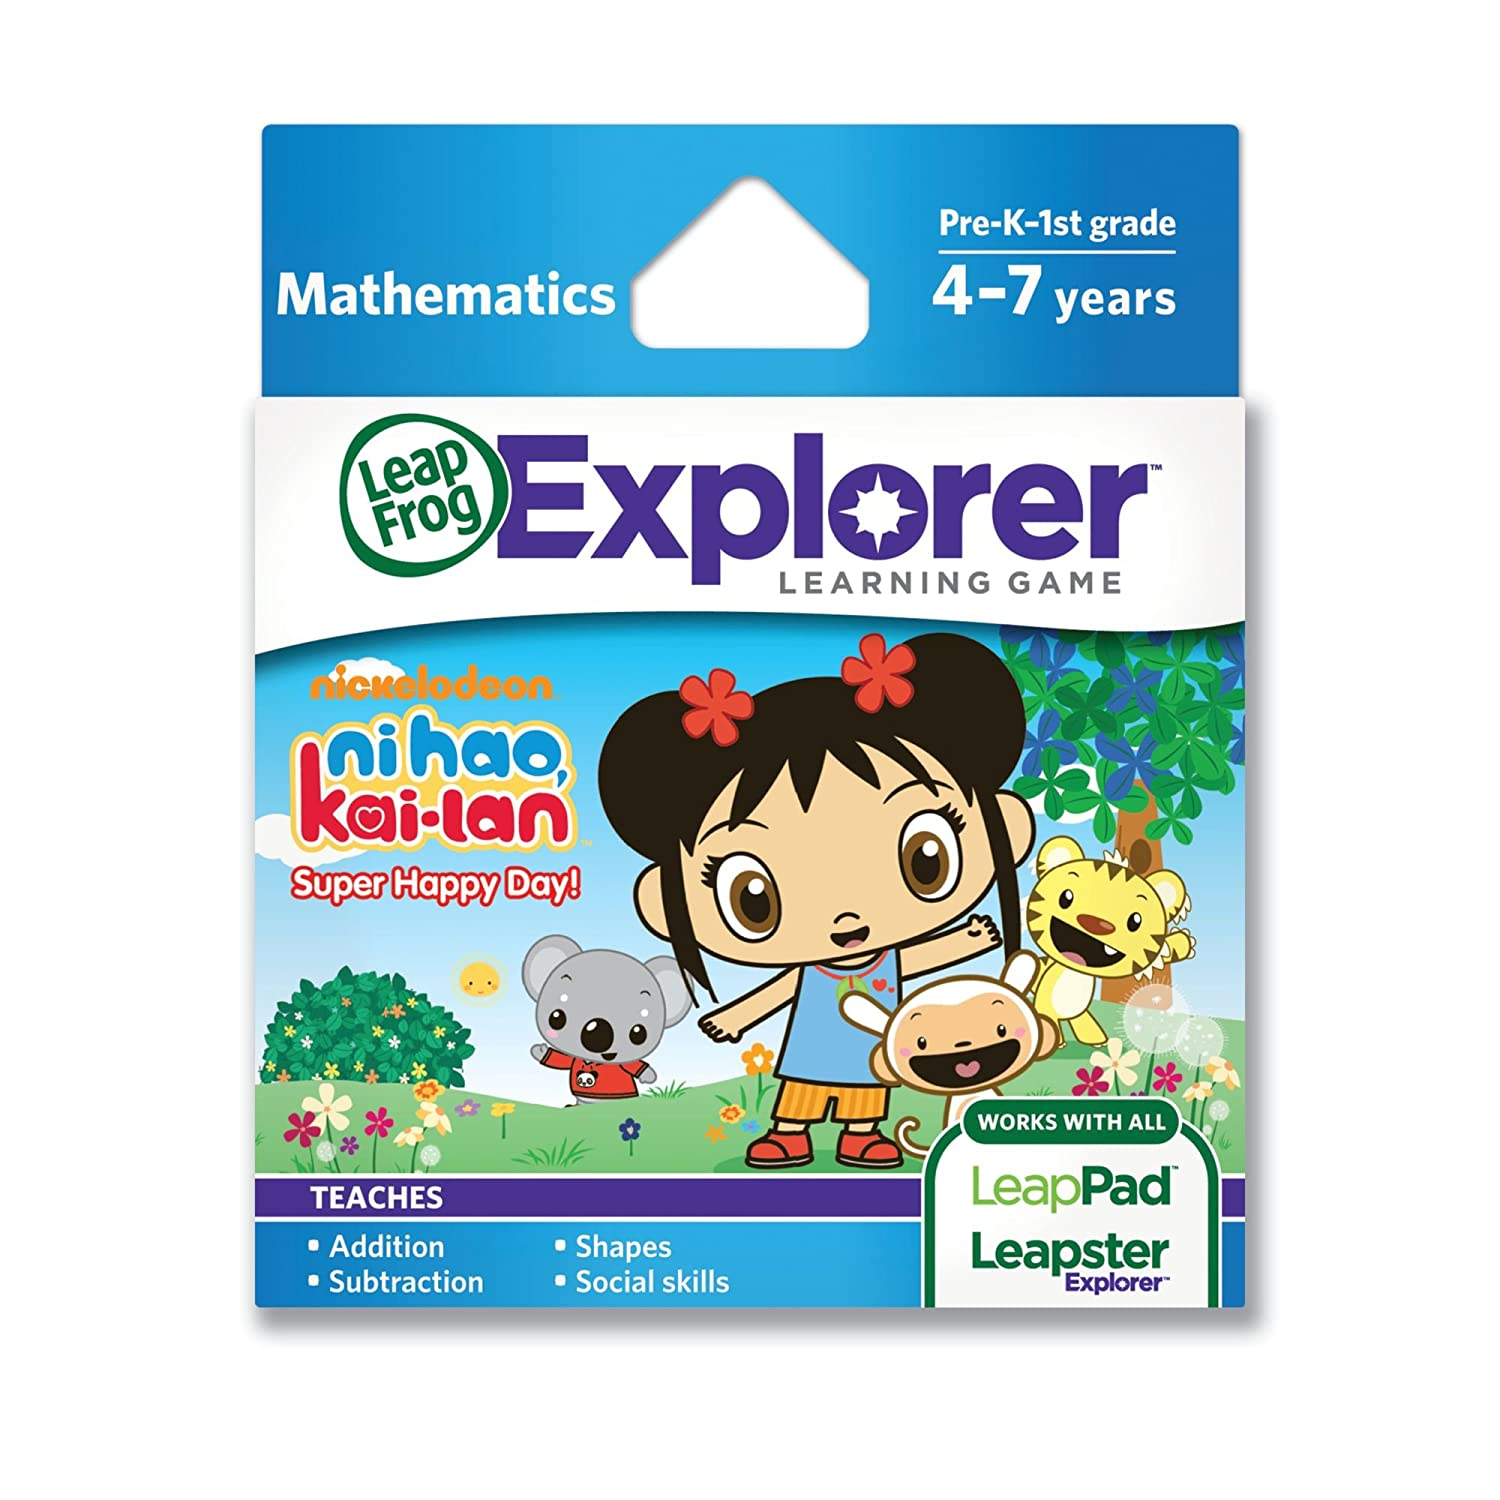 amazon com leapfrog ni hao kai lan super happy day learning